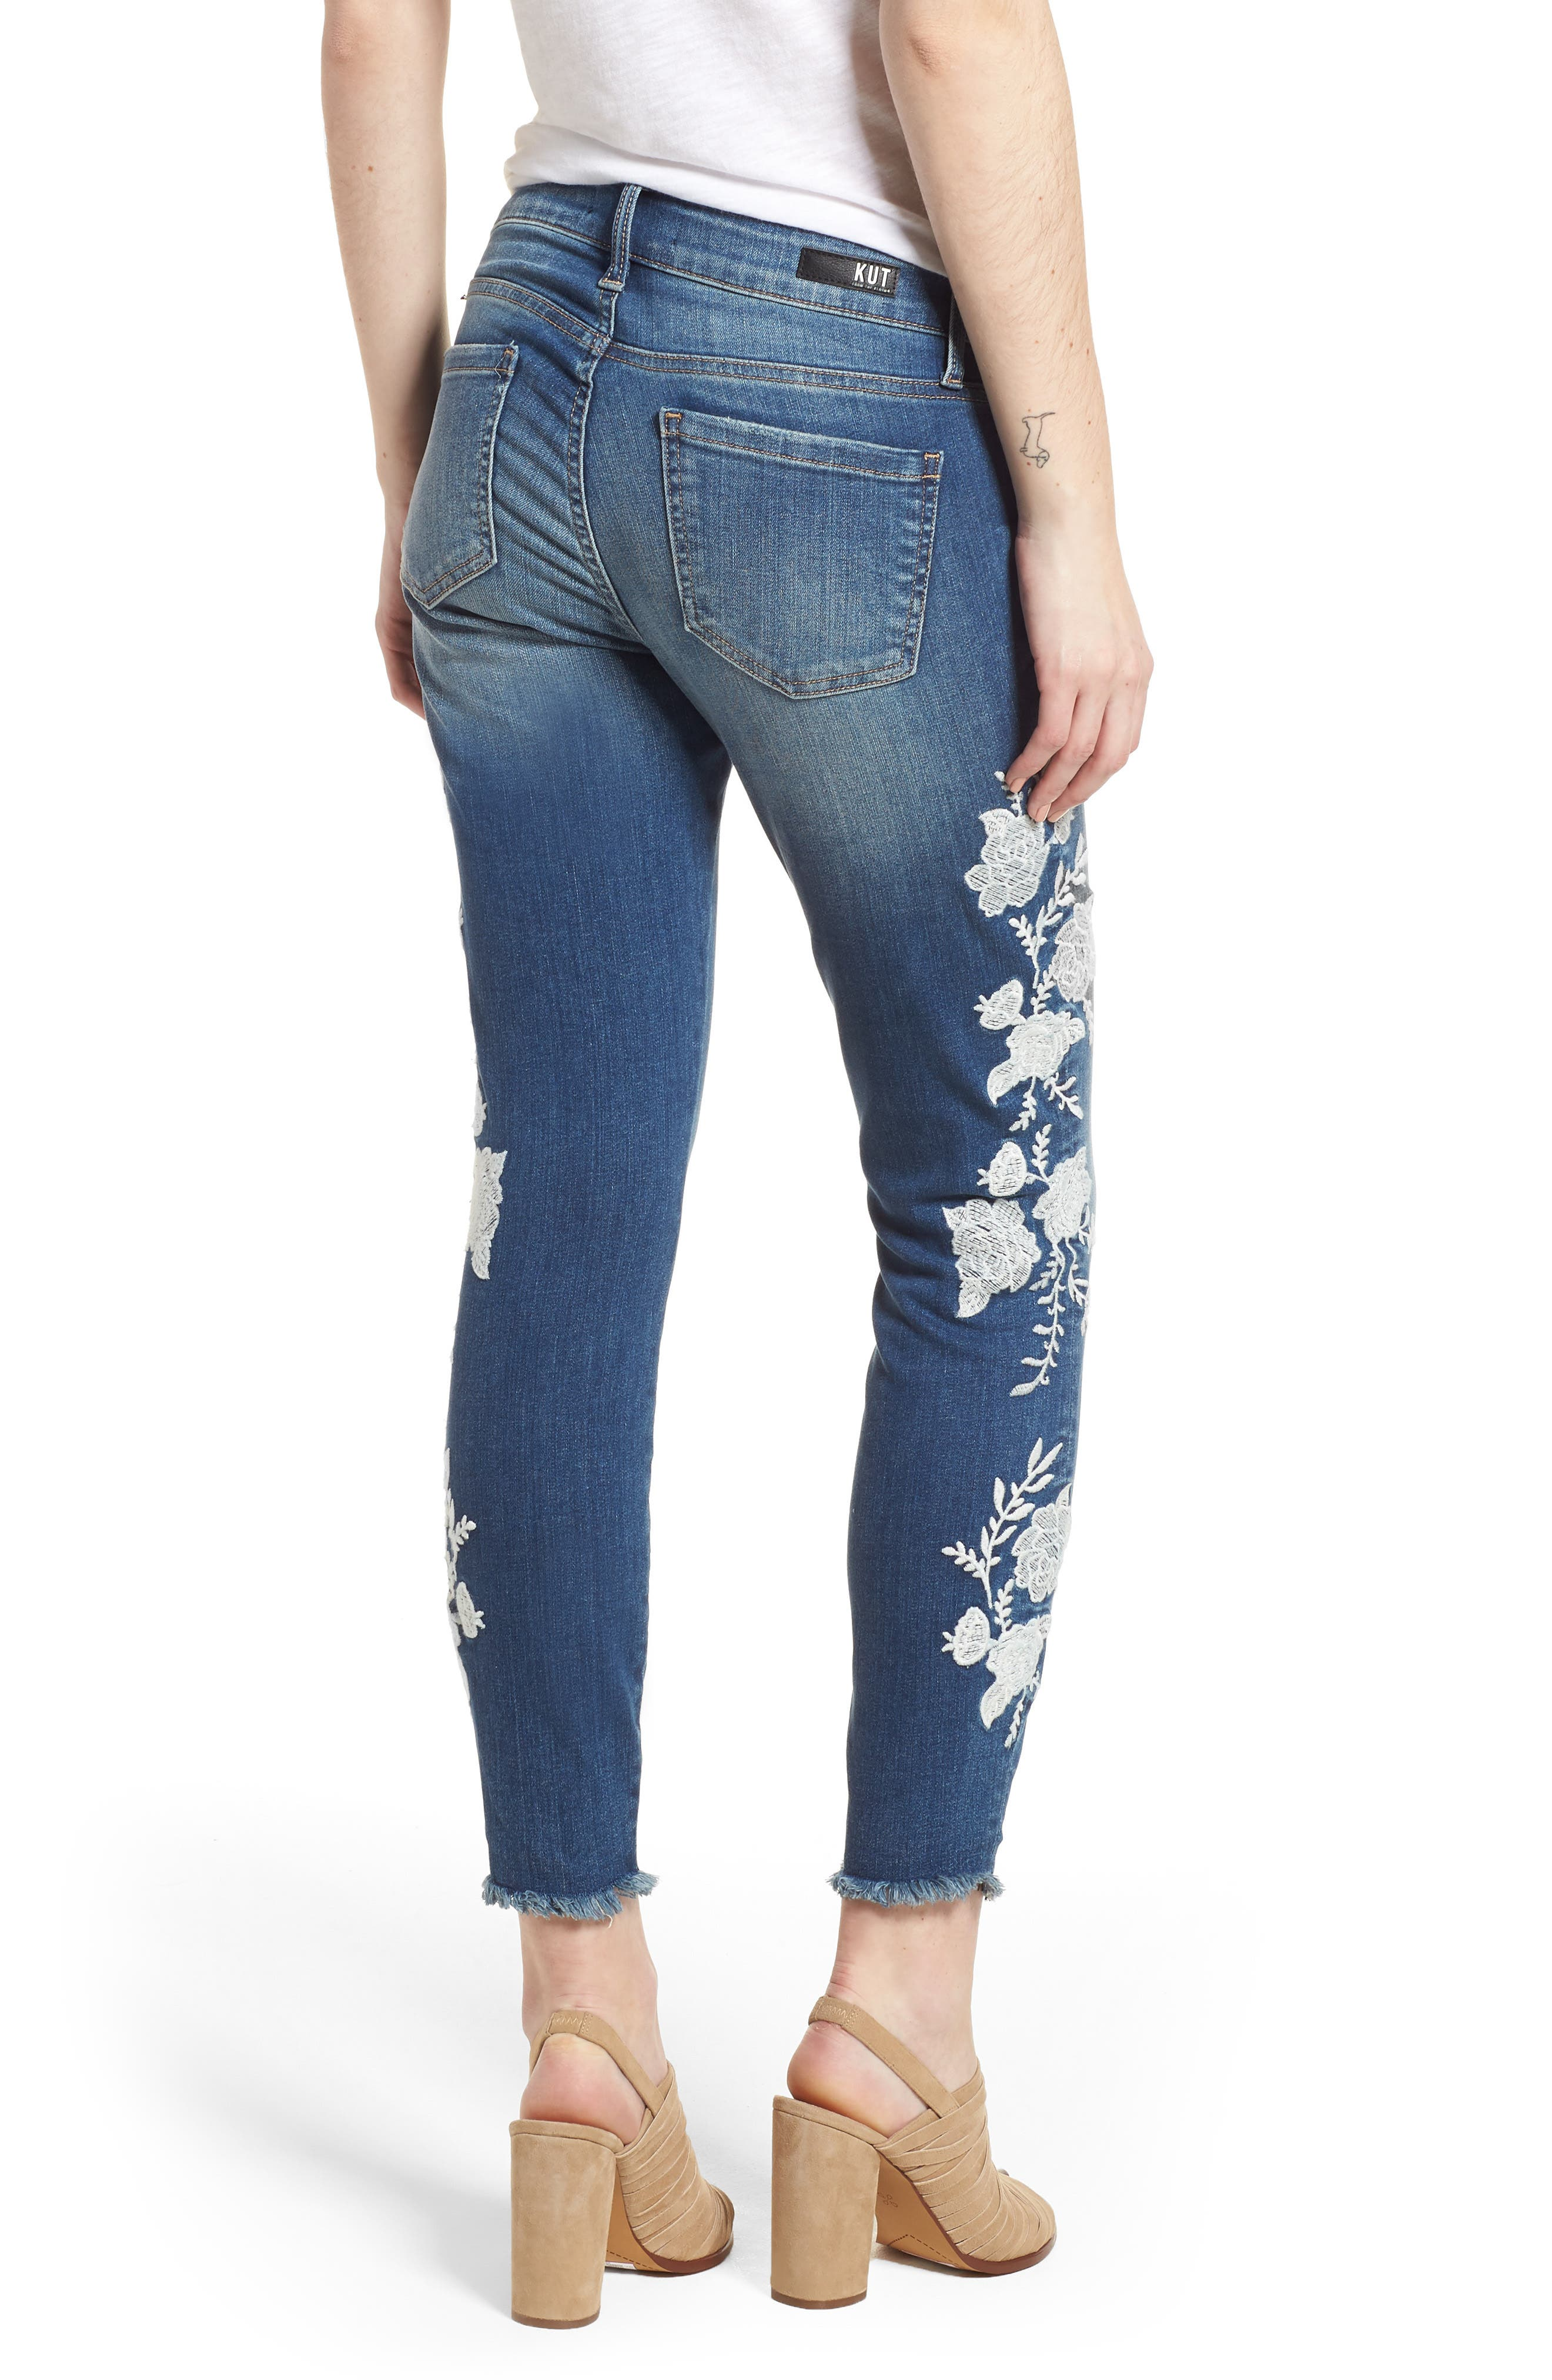 KUT from the Kloth Connie Embroidered Skinny Jeans,                             Alternate thumbnail 2, color,                             400